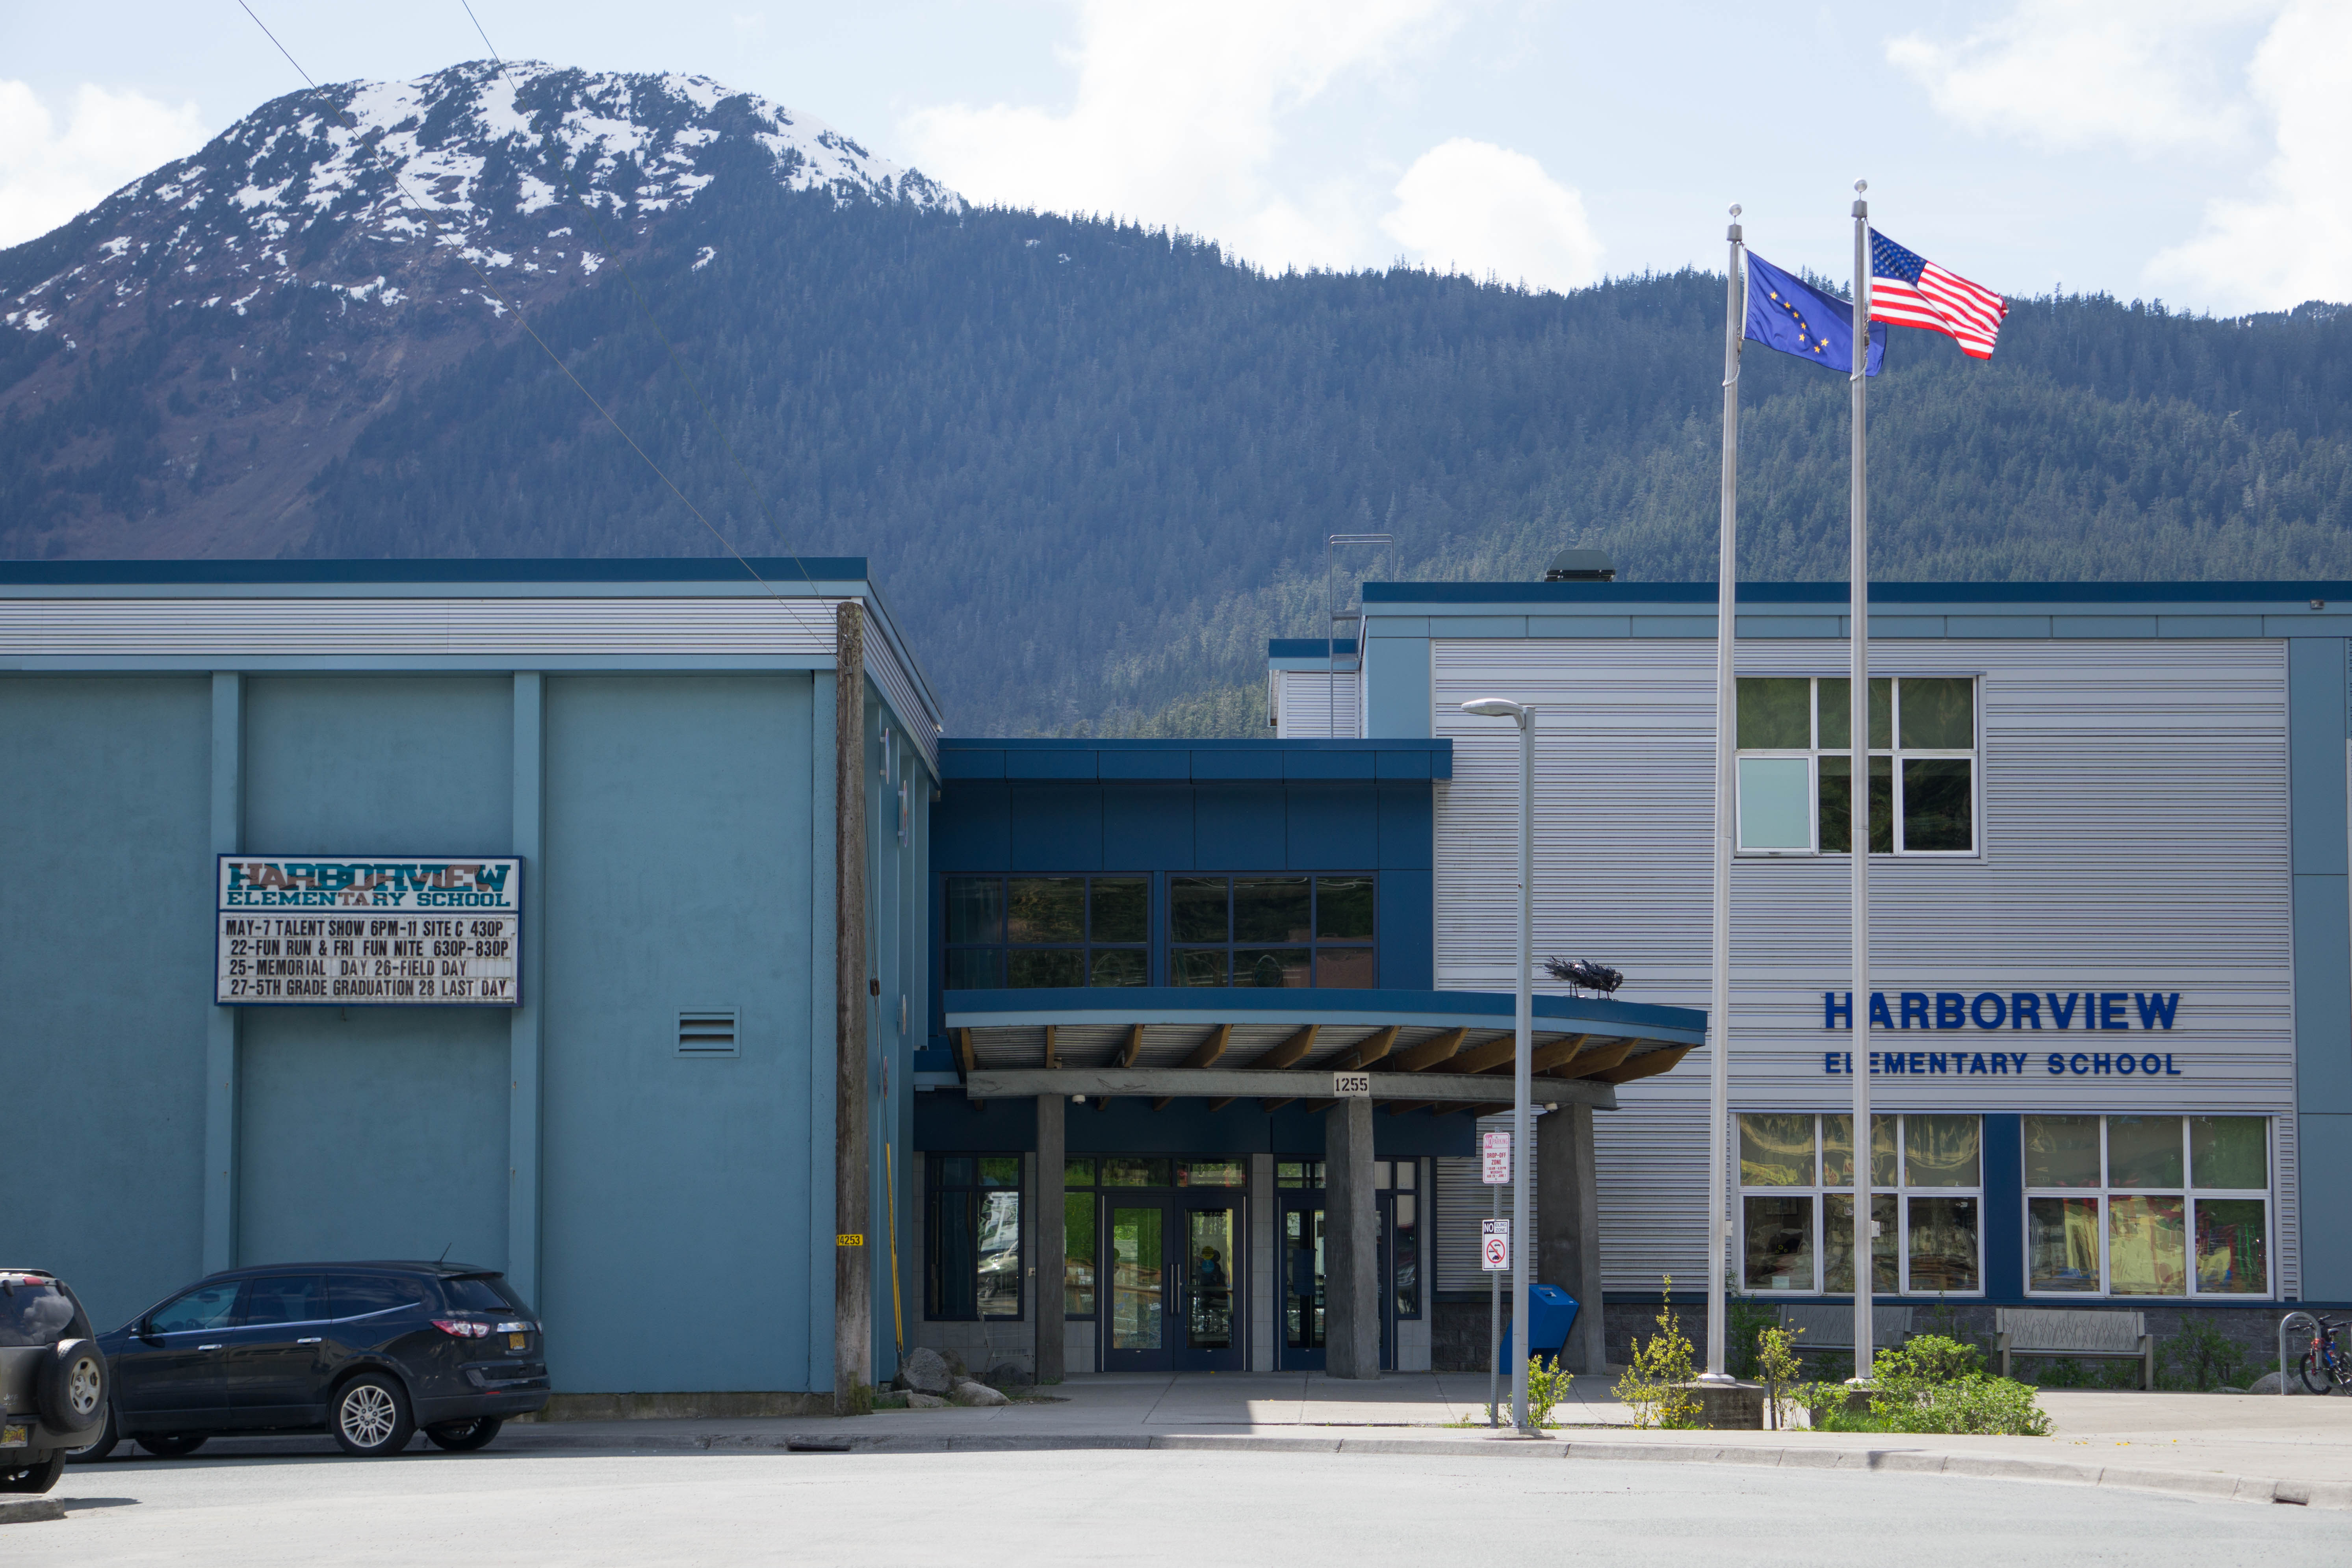 Harborview Elementary School